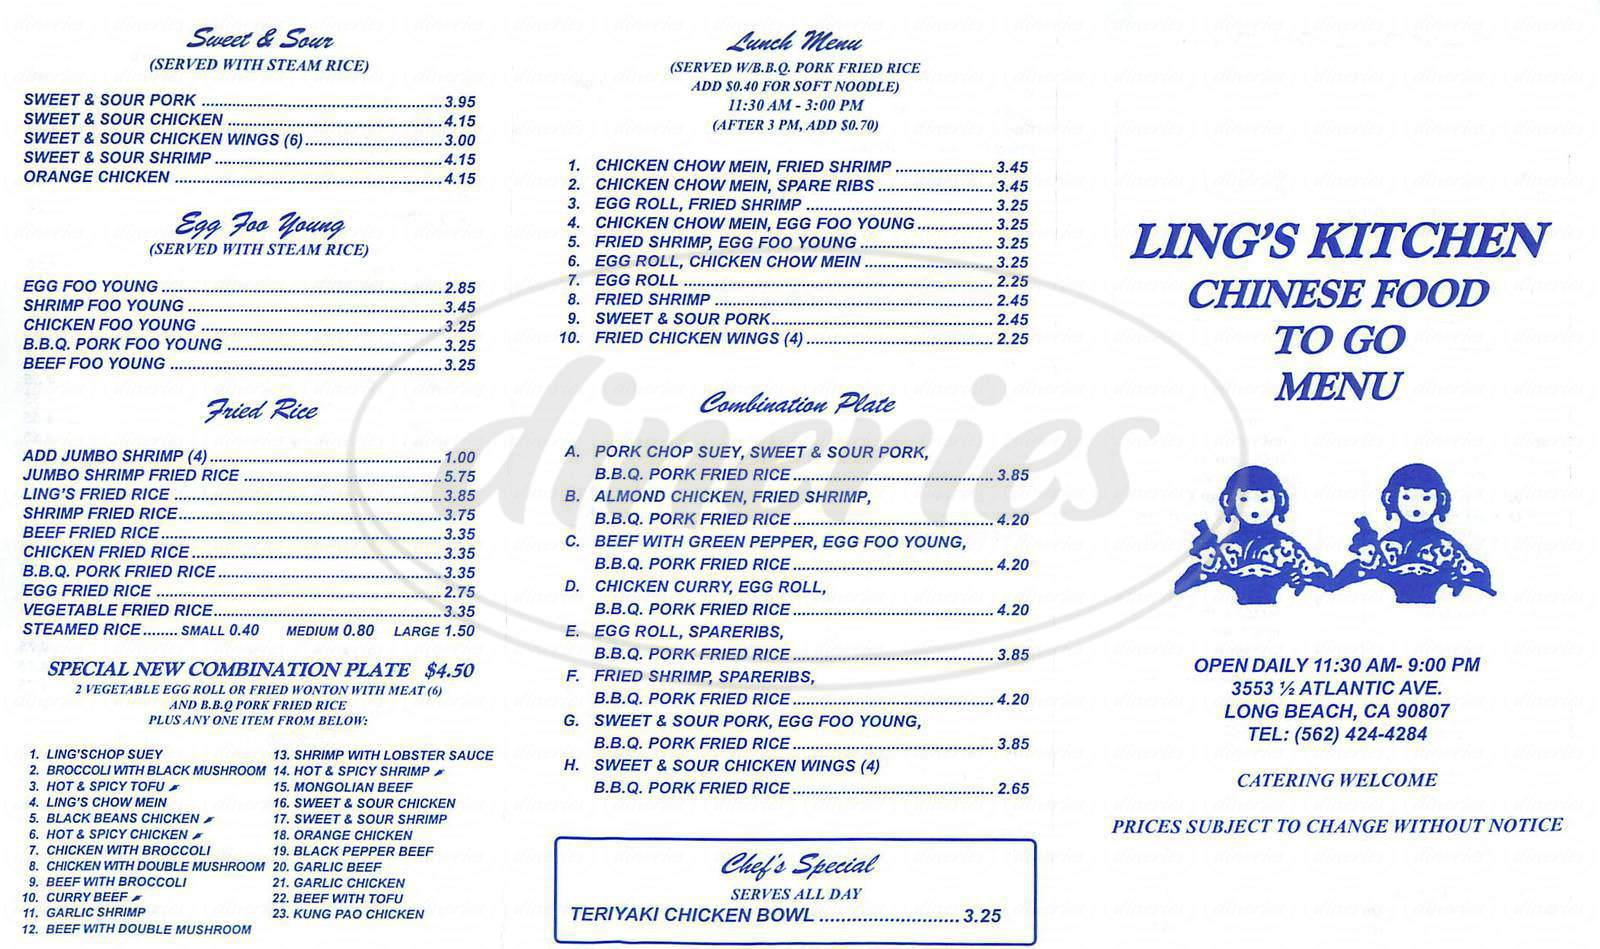 menu for Ling's Kitchen